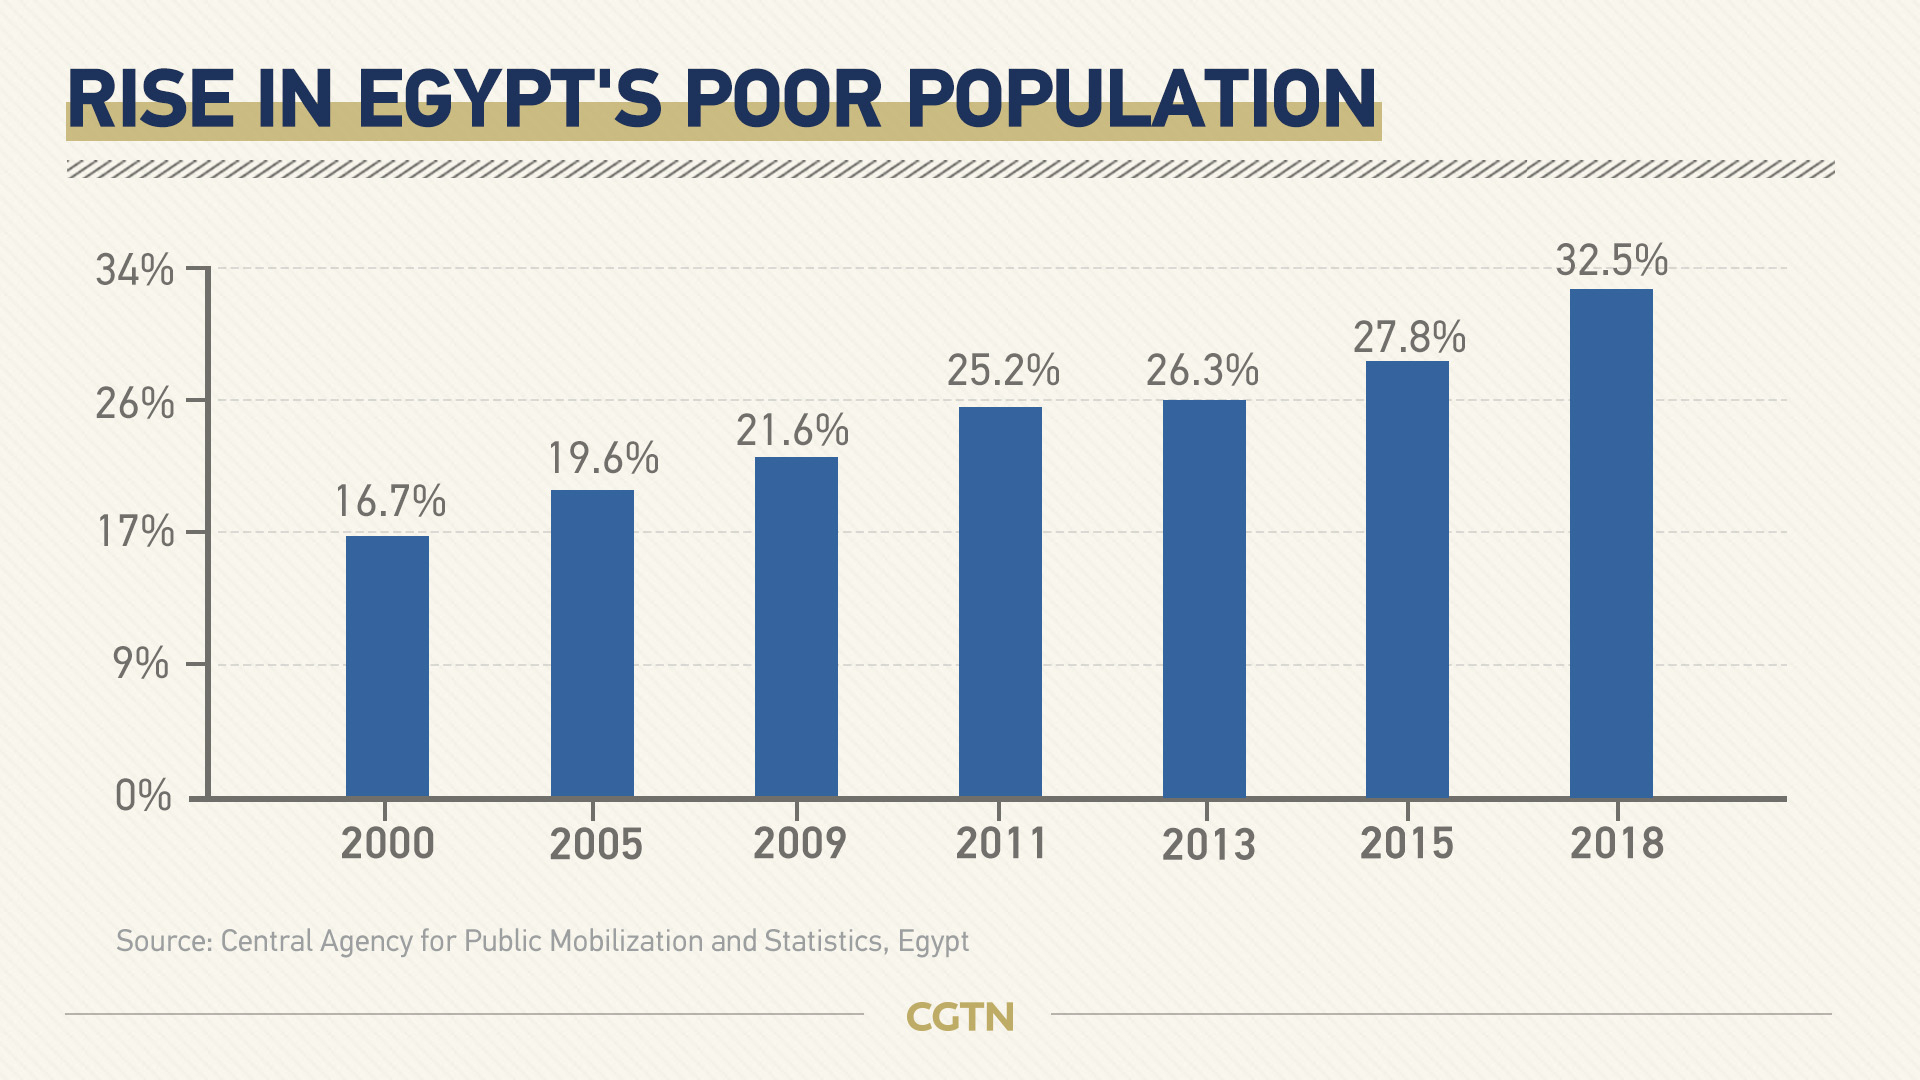 Egypt's failure to curb poverty despite GDP growth causes